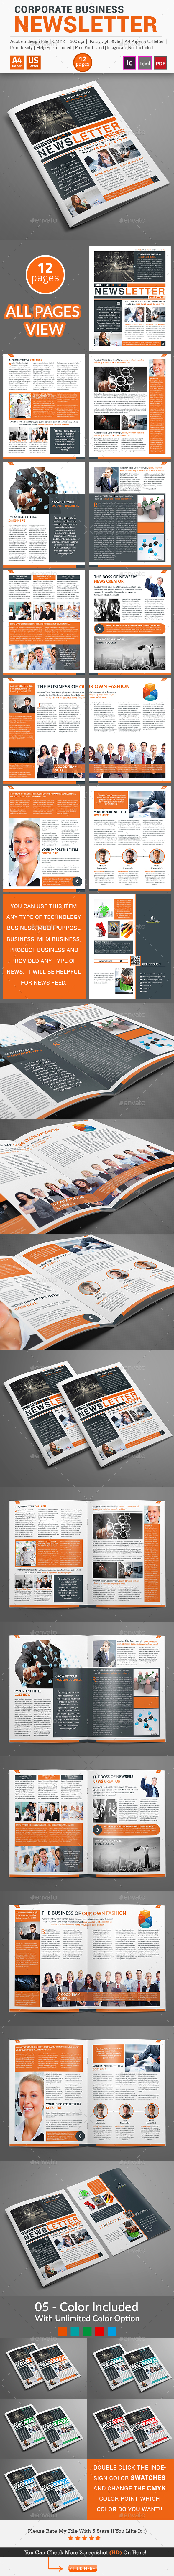 Newsletter For Corporate Business (12 pages) - Newsletters Print Templates